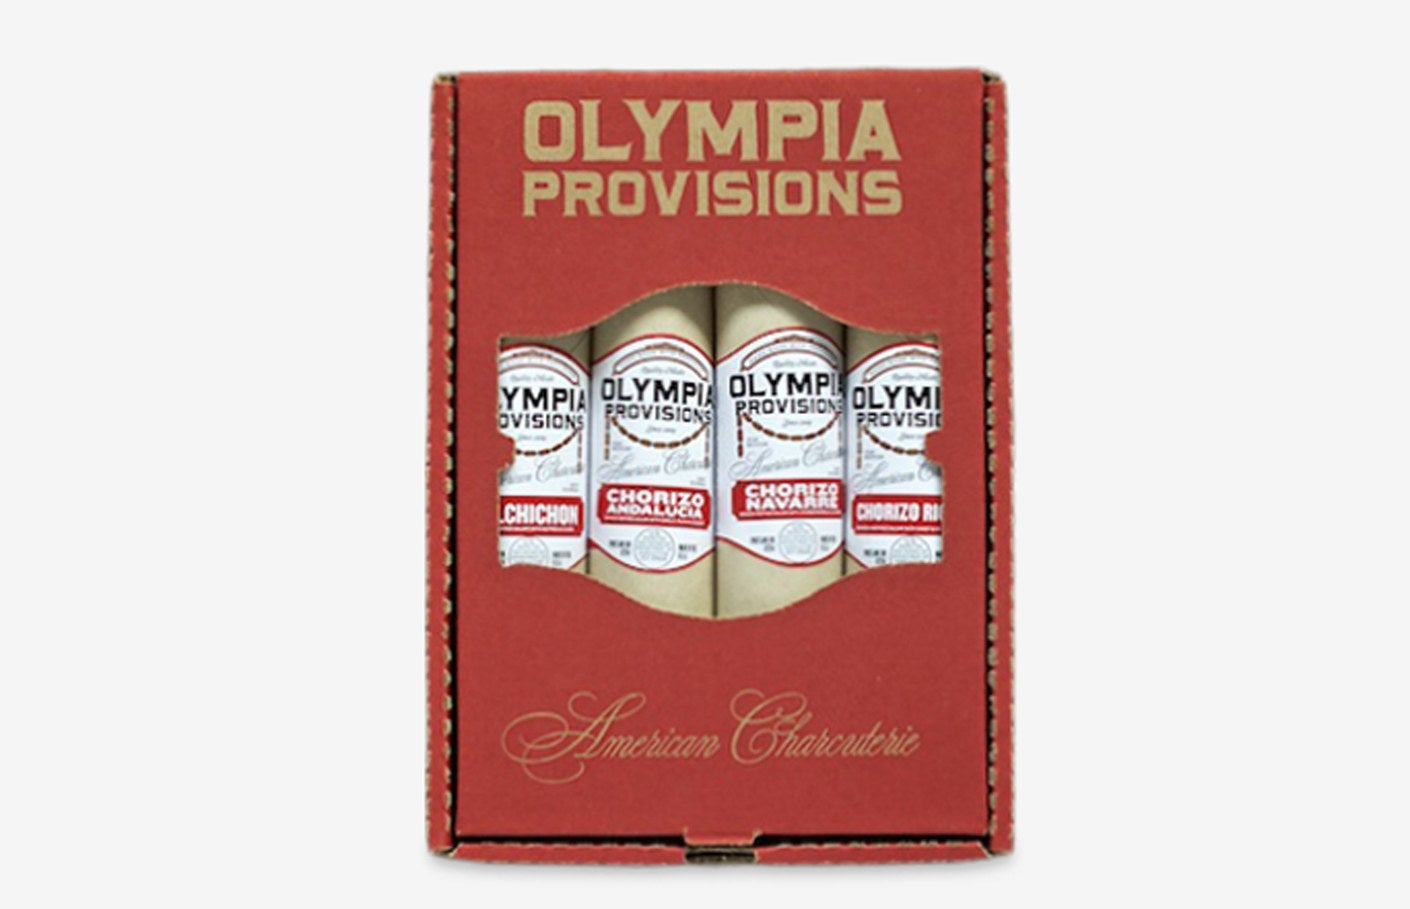 The box of chorizo salamis with the brand label on the front of each salami reading Olympia Provisions